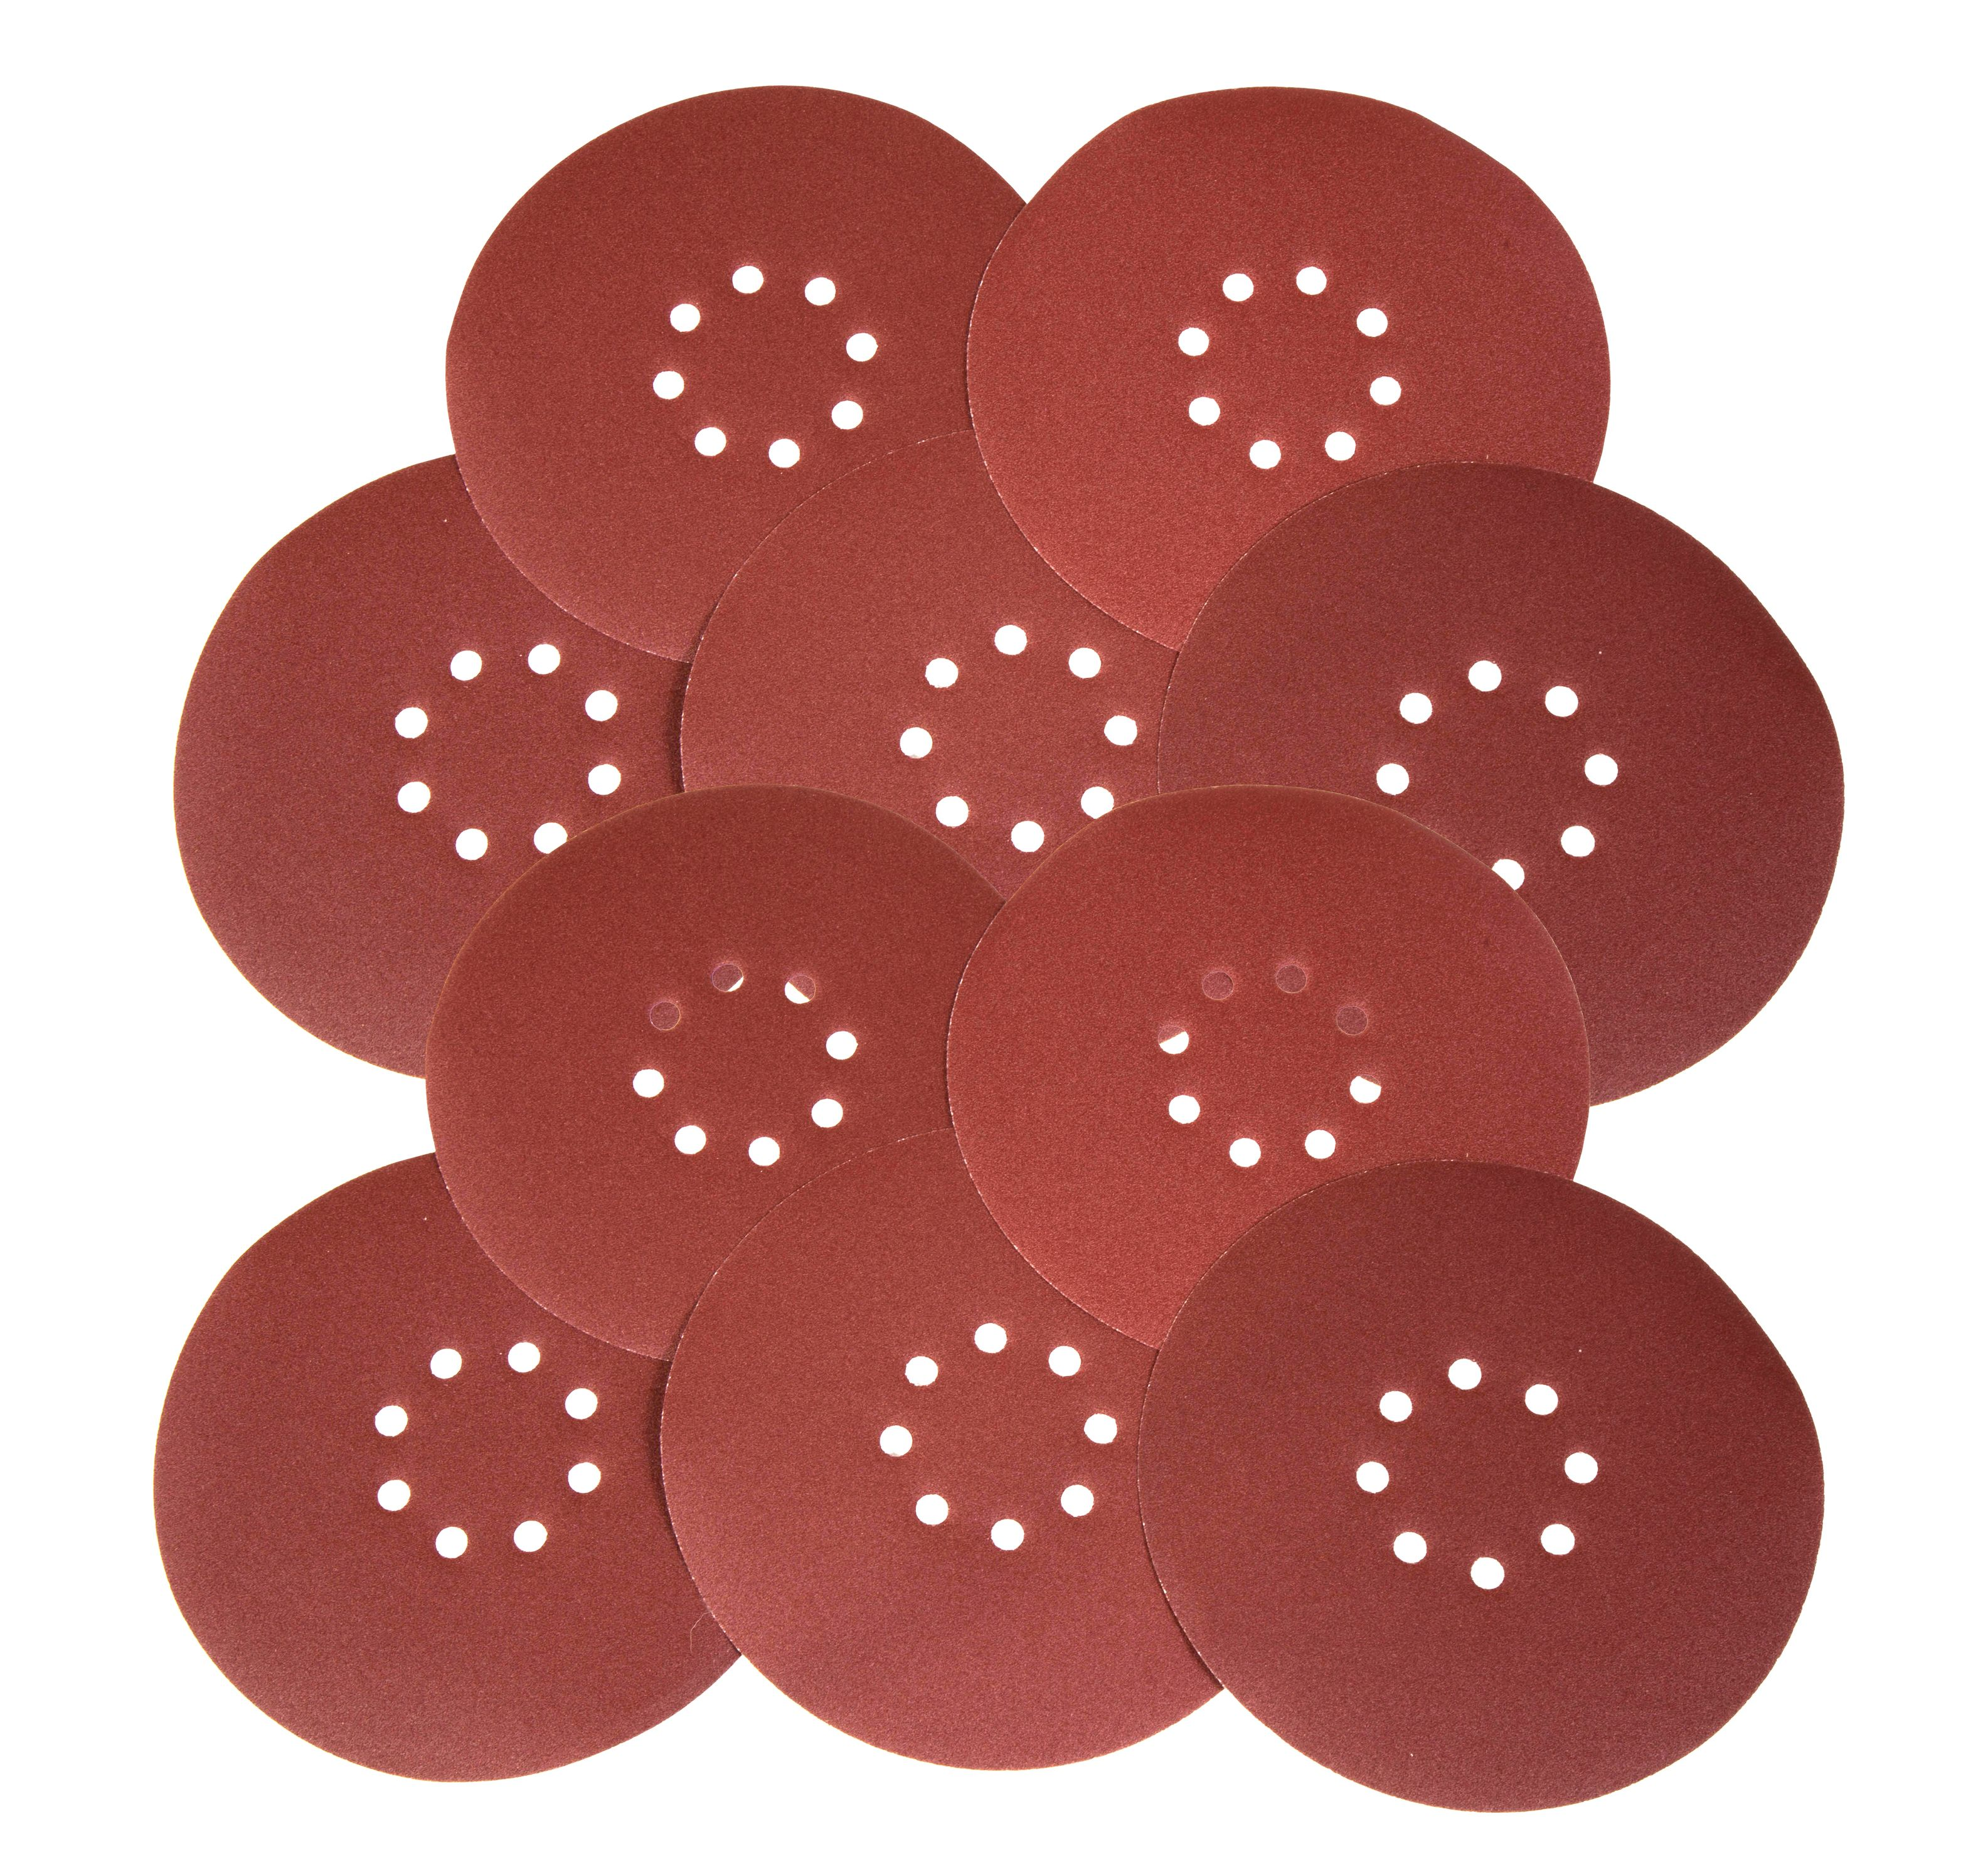 WEN Drywall Sander 150-Grit Hook and Loop 9-Inch Sandpaper, 10-Pack